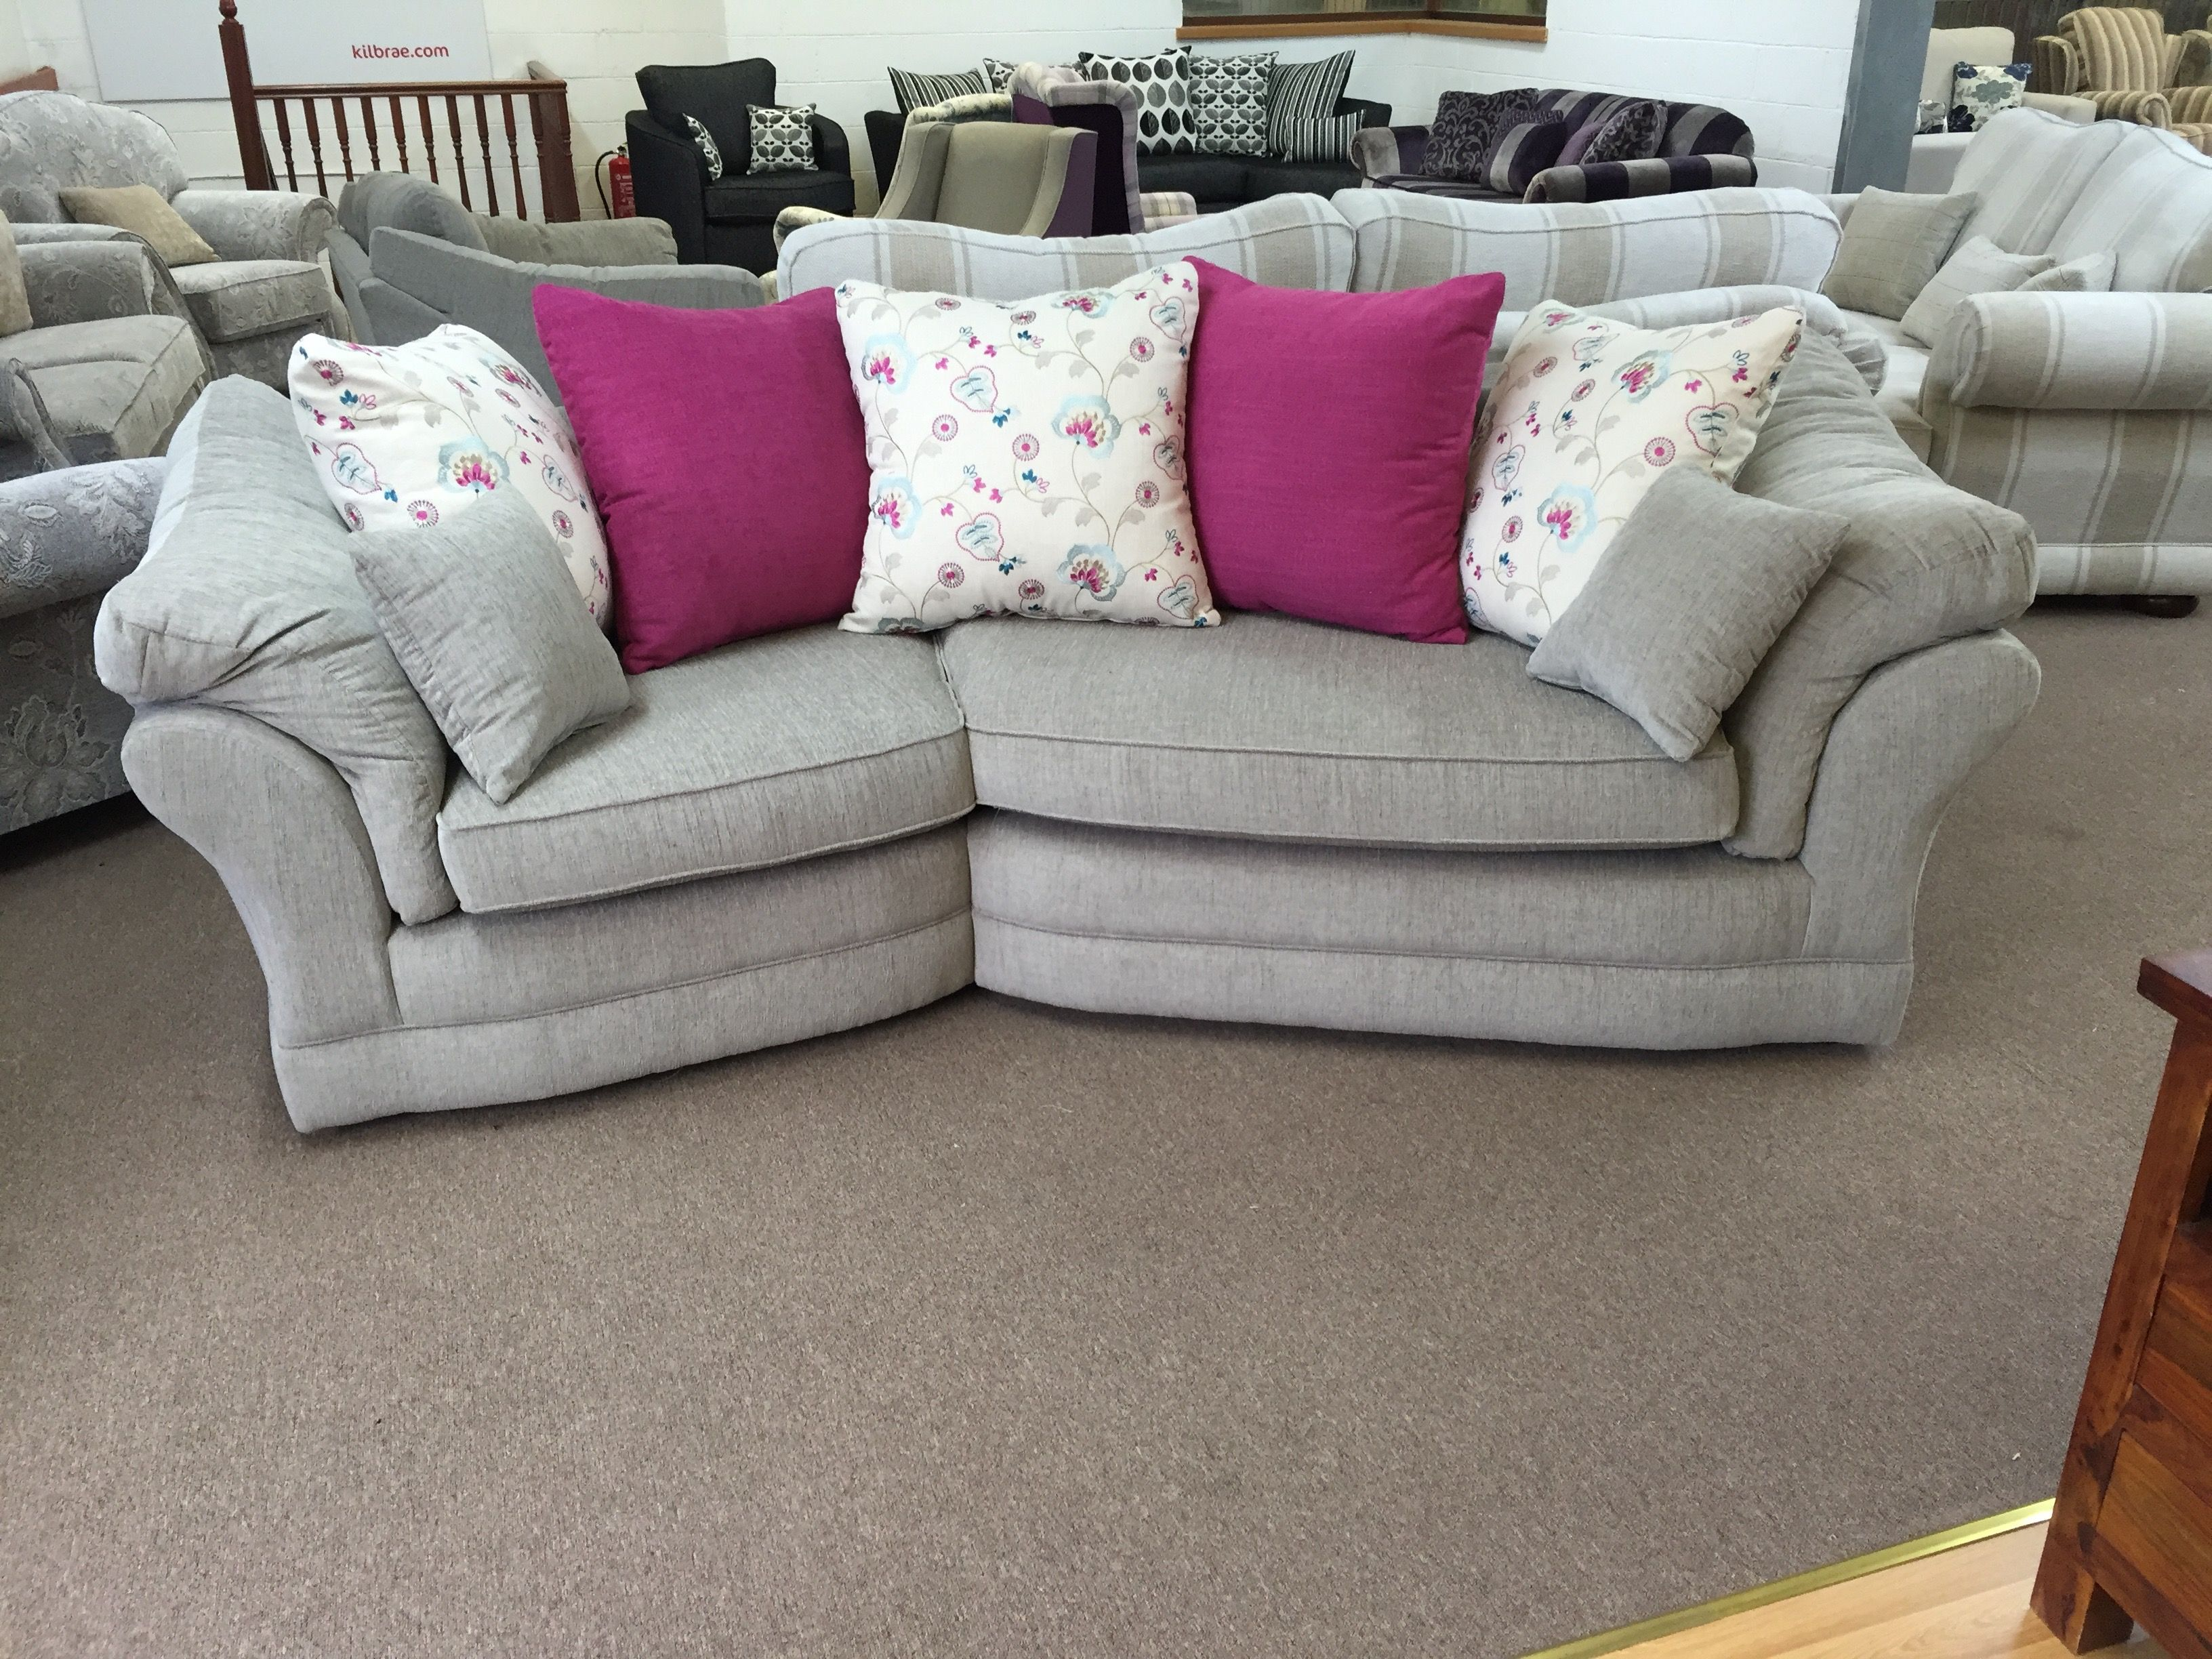 The snoozy sofa one of our most comfortable sofas which are perfect for just chilling